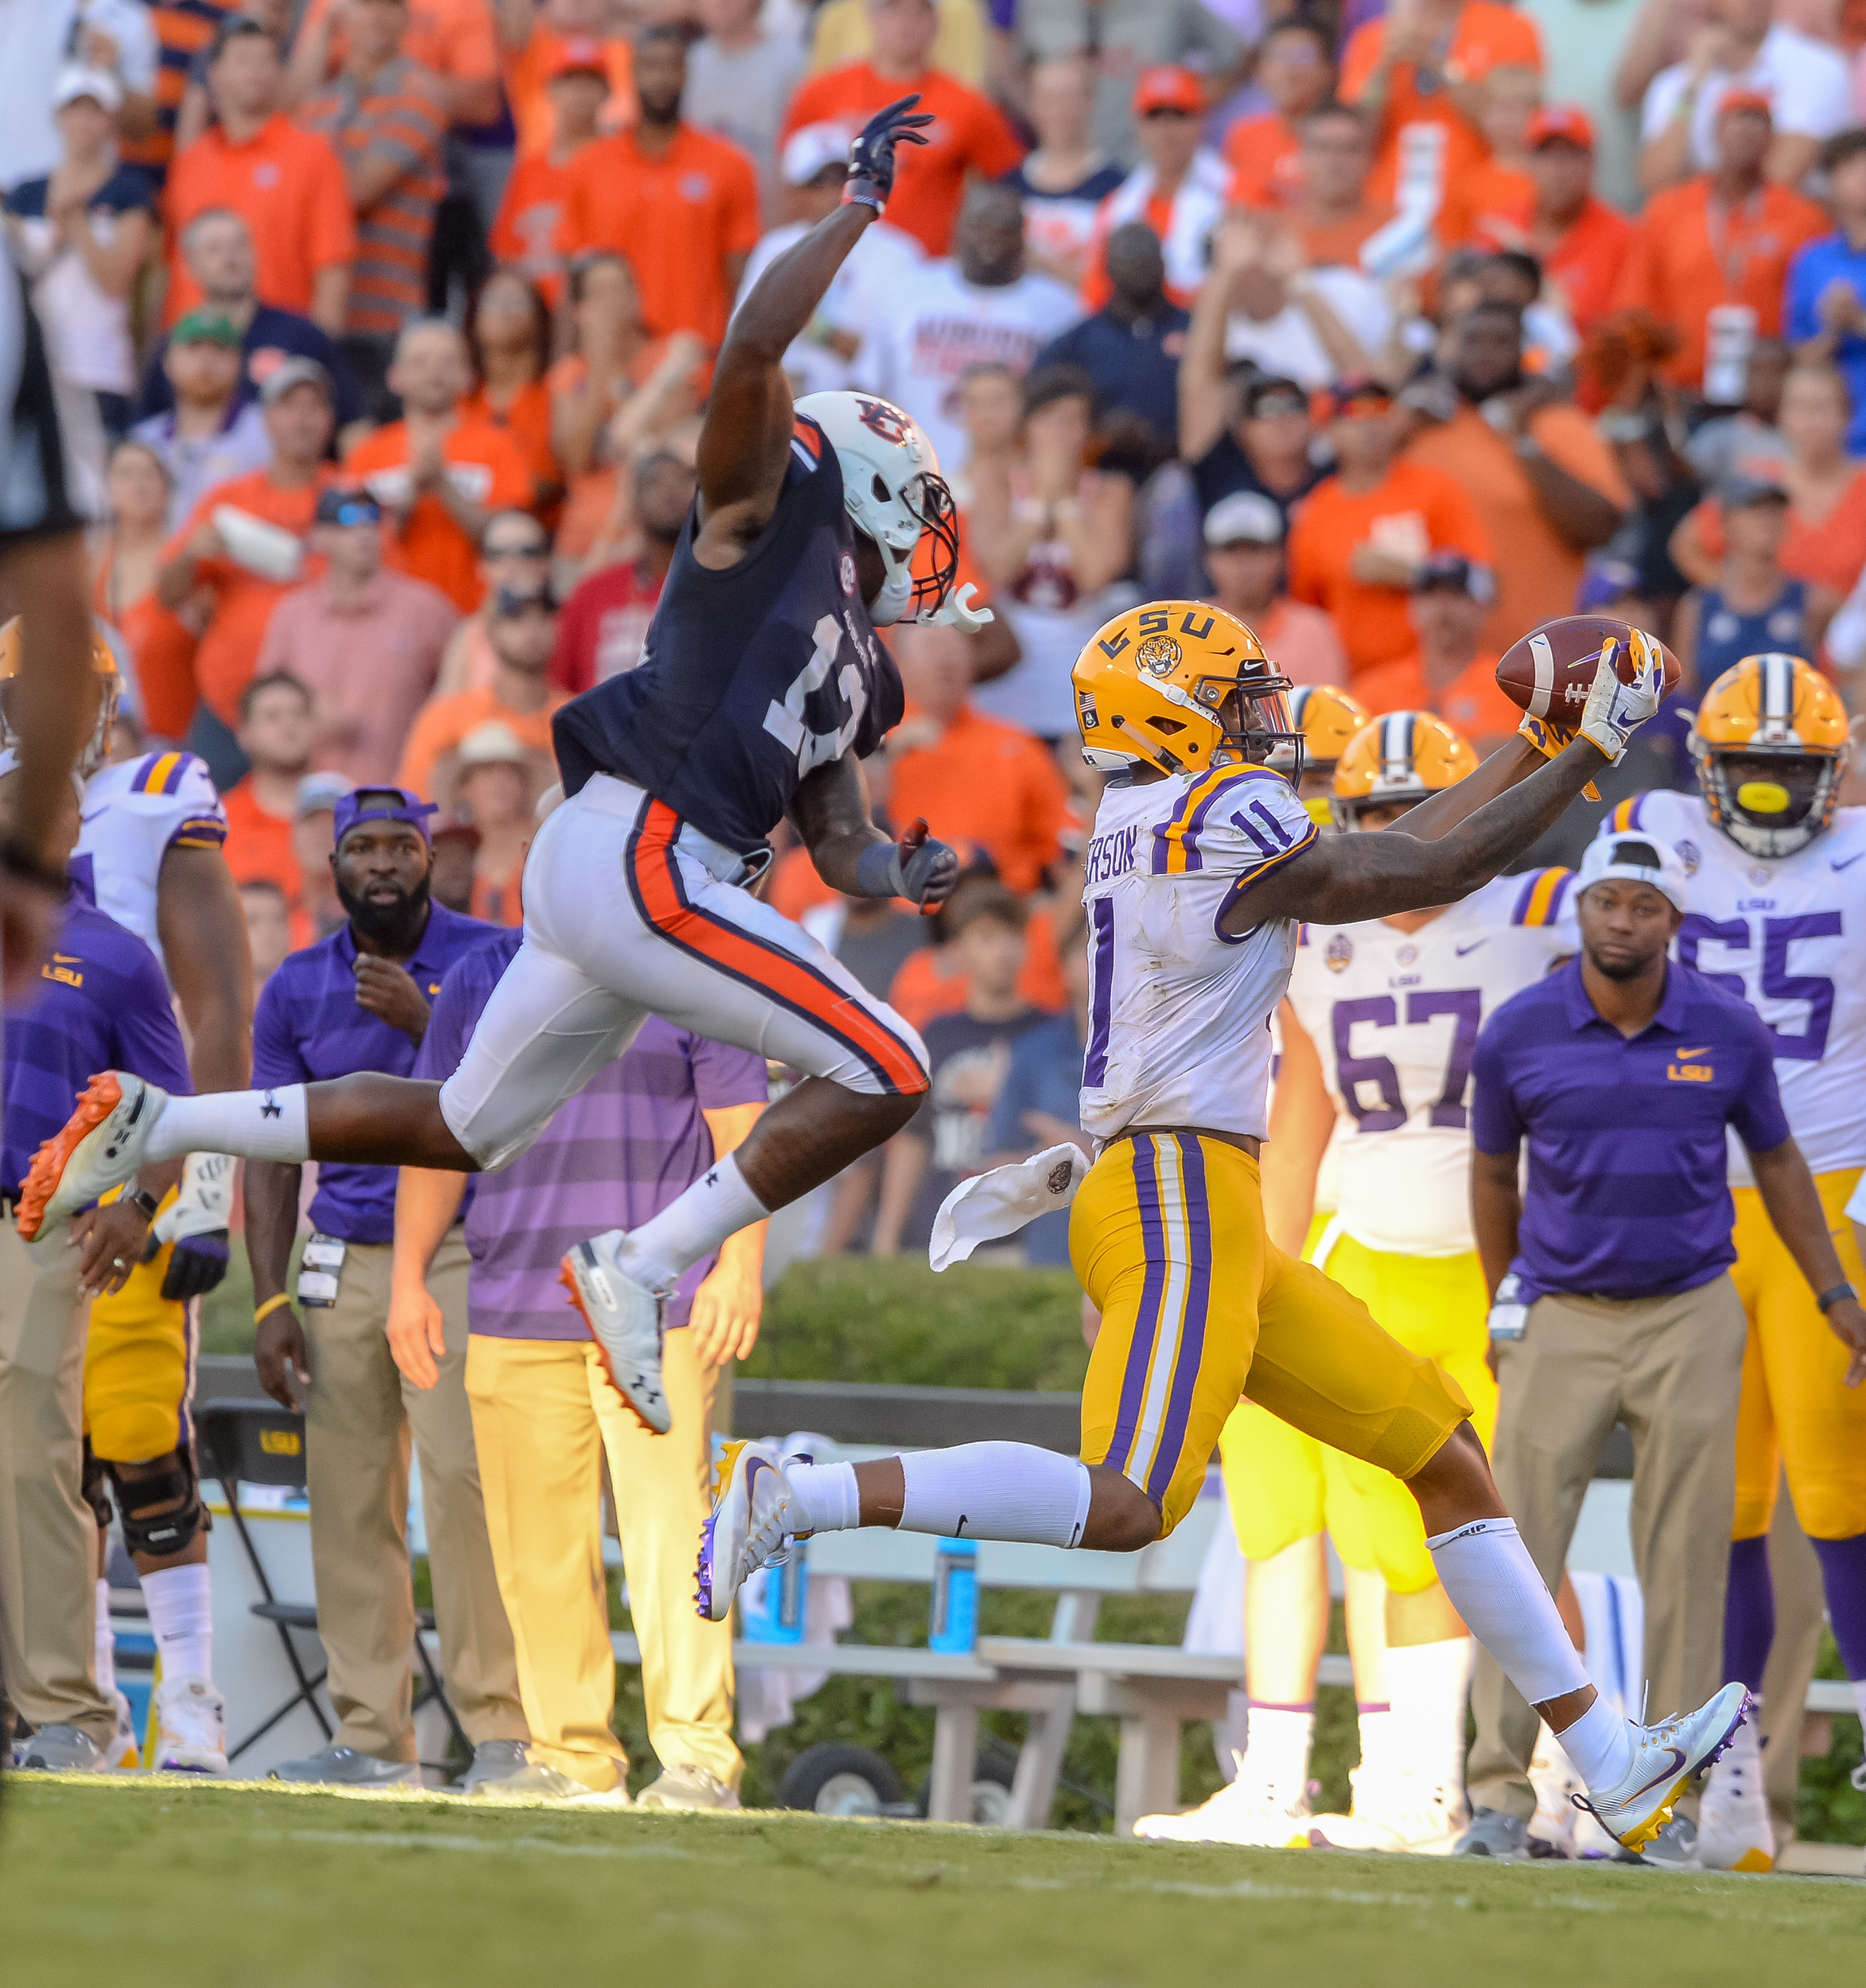 LSU Tigers wide receiver Dee Anderson (11) catches a pass over the outstretched arms of Auburn Tigers defensive back Jamel Dean (12) during the second half of Saturday's game, at Jordan Hare Stadium in Auburn Atlanta. (Contributed by Jeff Johnsey)